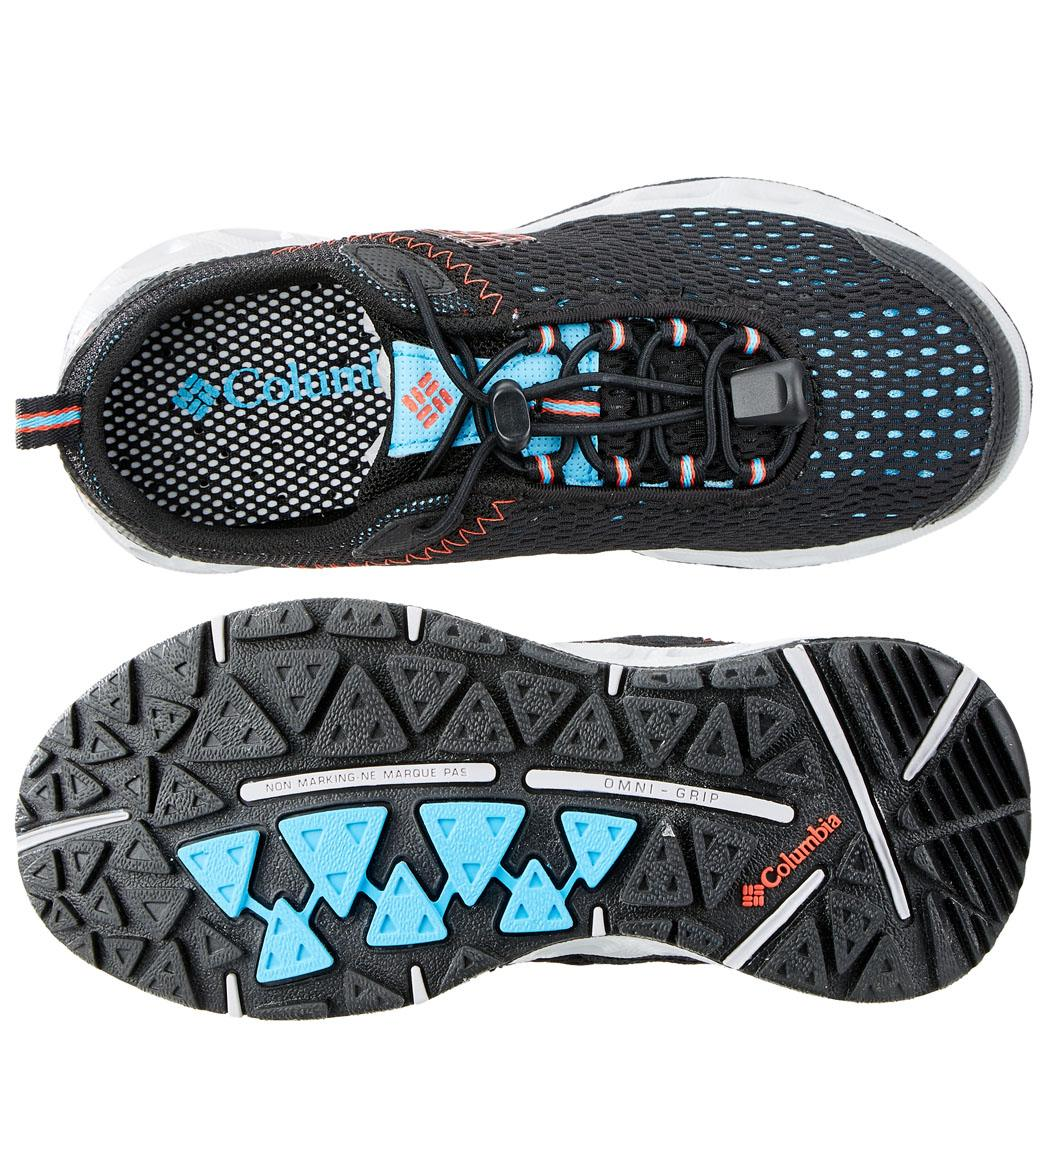 128a5690a07 Columbia Youth Drainmaker III Water Shoe at SwimOutlet.com - Free ...